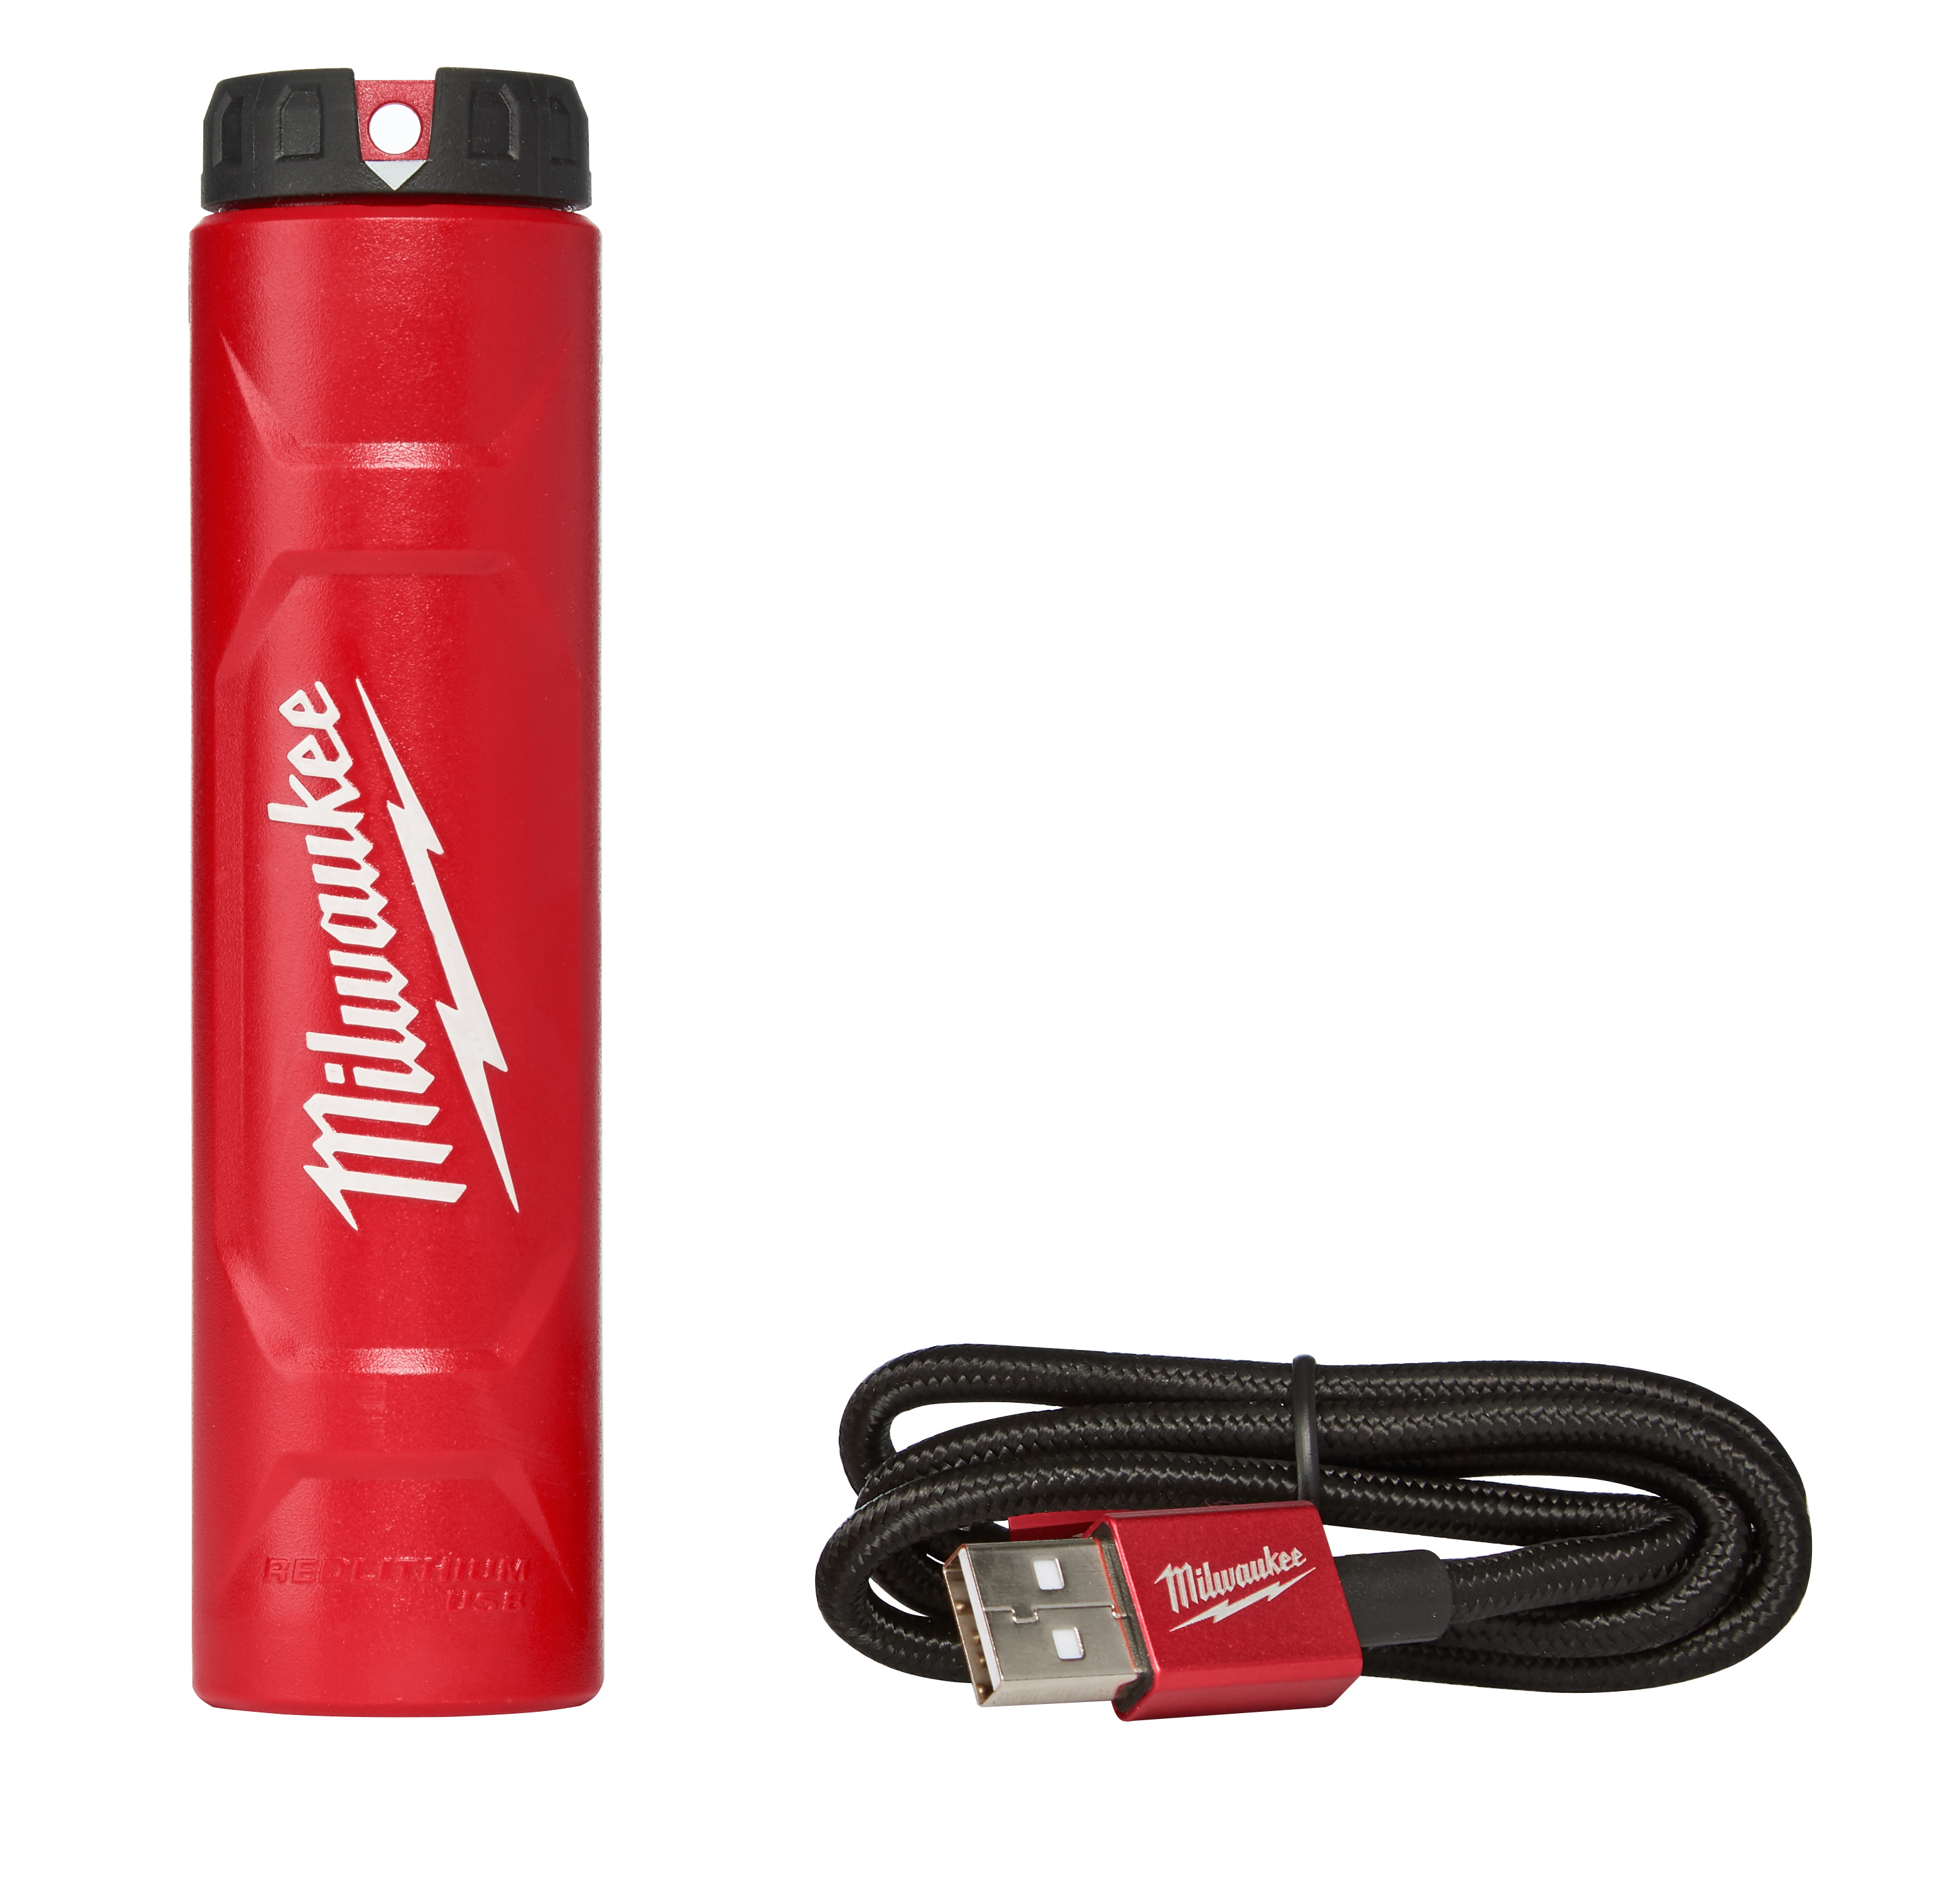 Milwaukee® REDLITHIUM™ 48-59-2002 Battery Charger, For Use With M12™, M18™ and REDLITHIUM™ USB Battery, Lithium-Ion Battery, 2 hr Charging